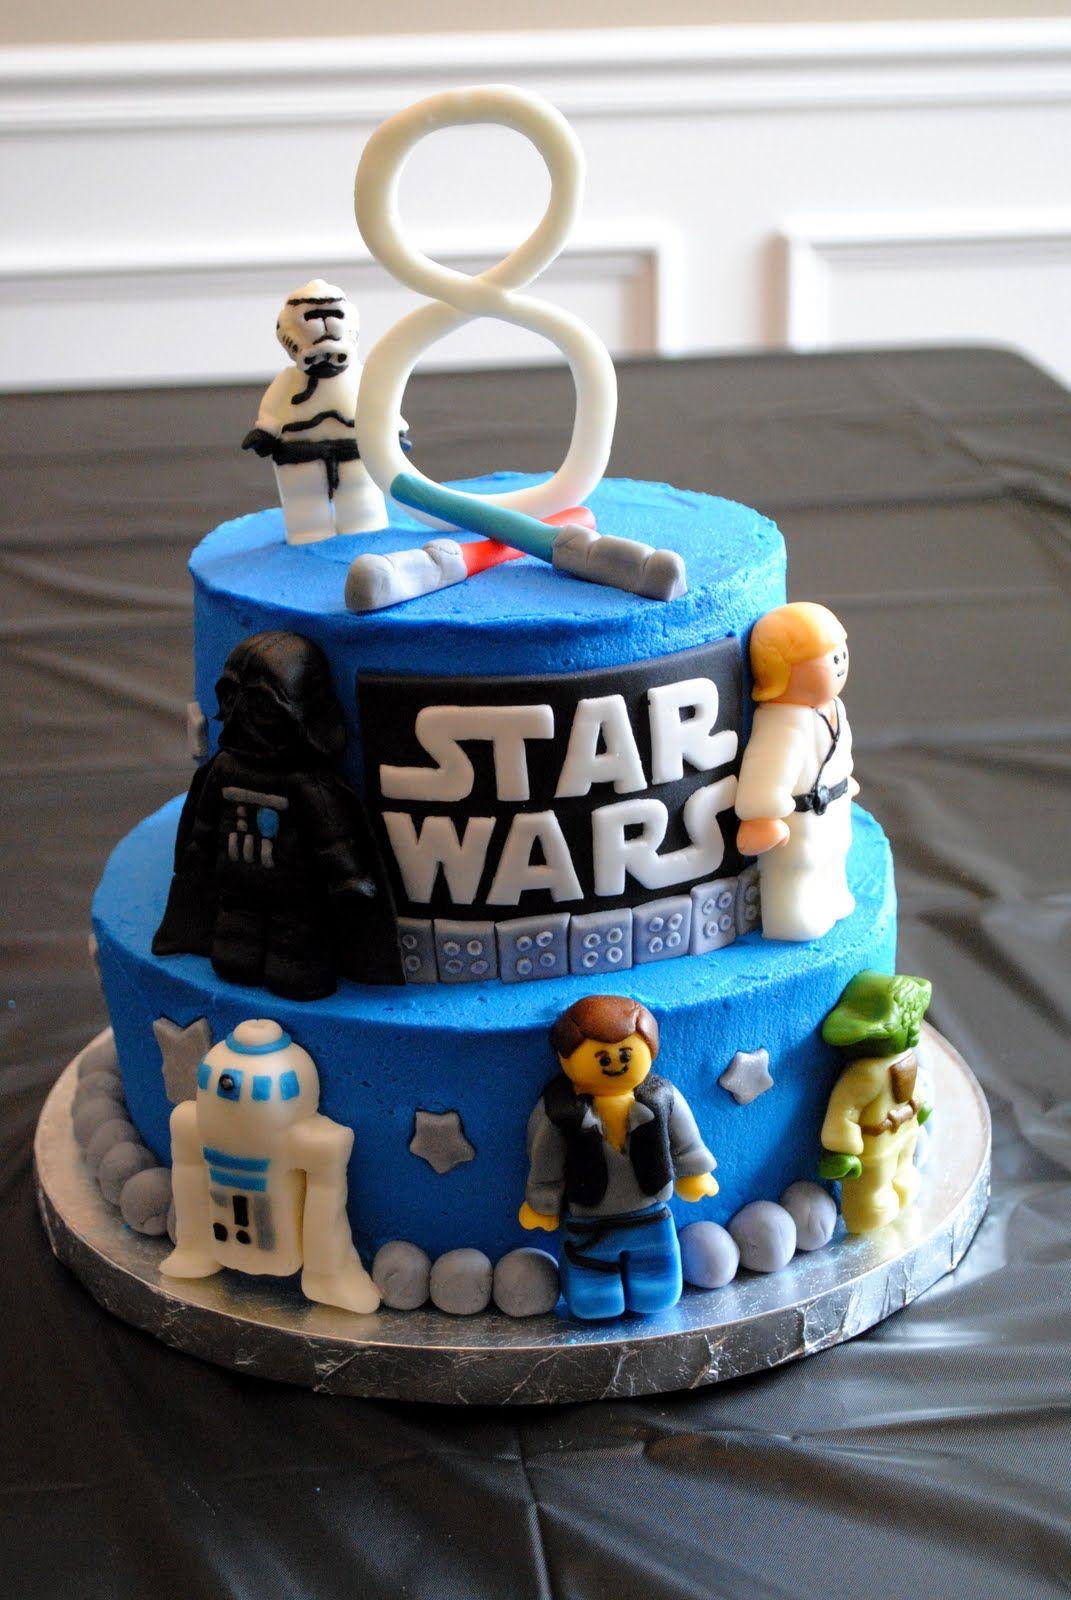 Star Wars Lego Birthday Cakes With Images Star Wars Birthday